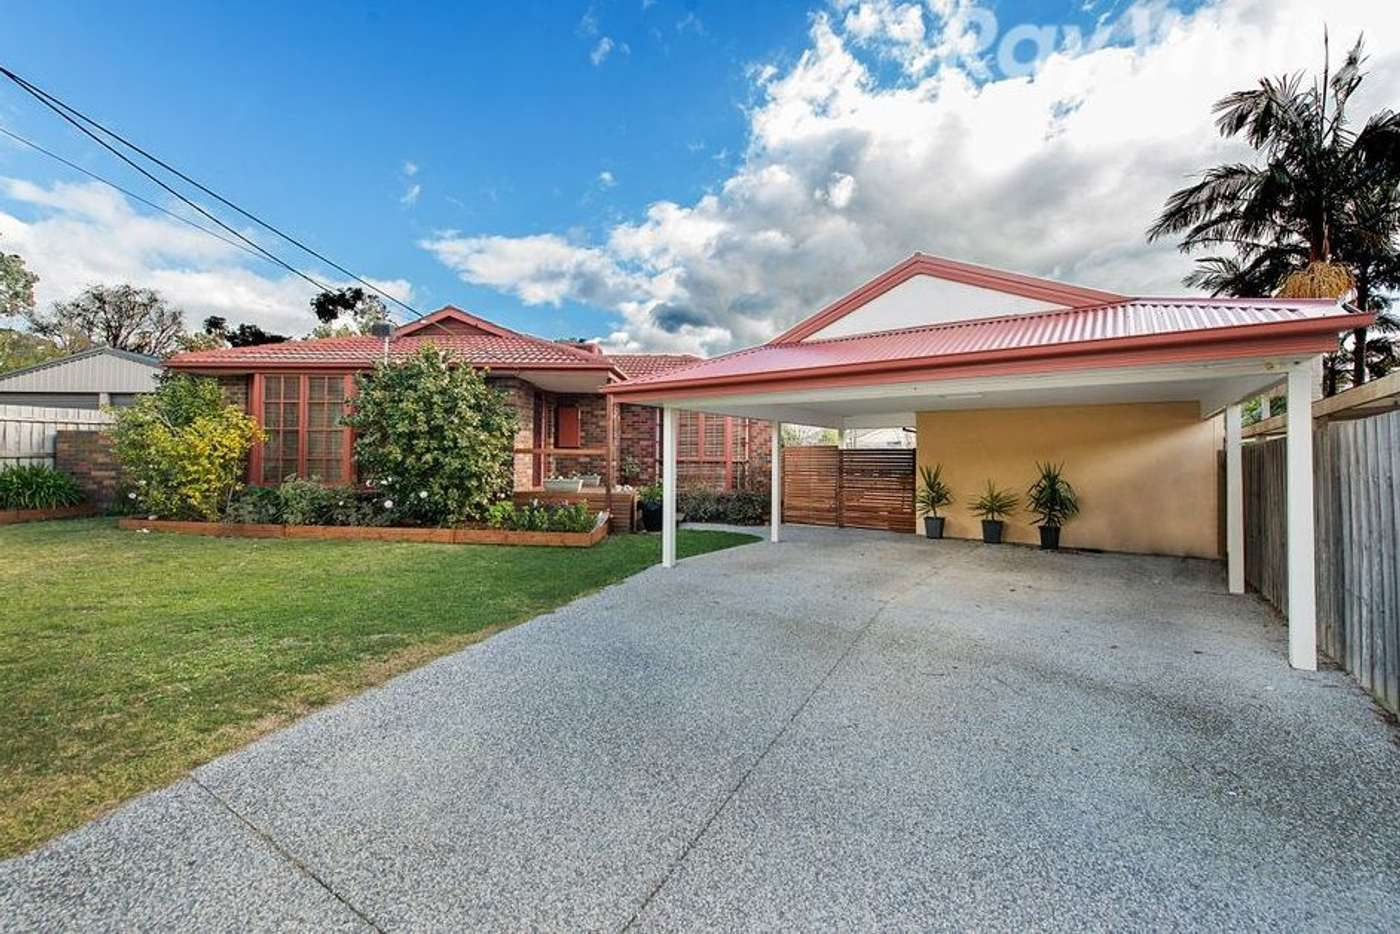 Main view of Homely house listing, 4 Hoad Court, Wantirna VIC 3152